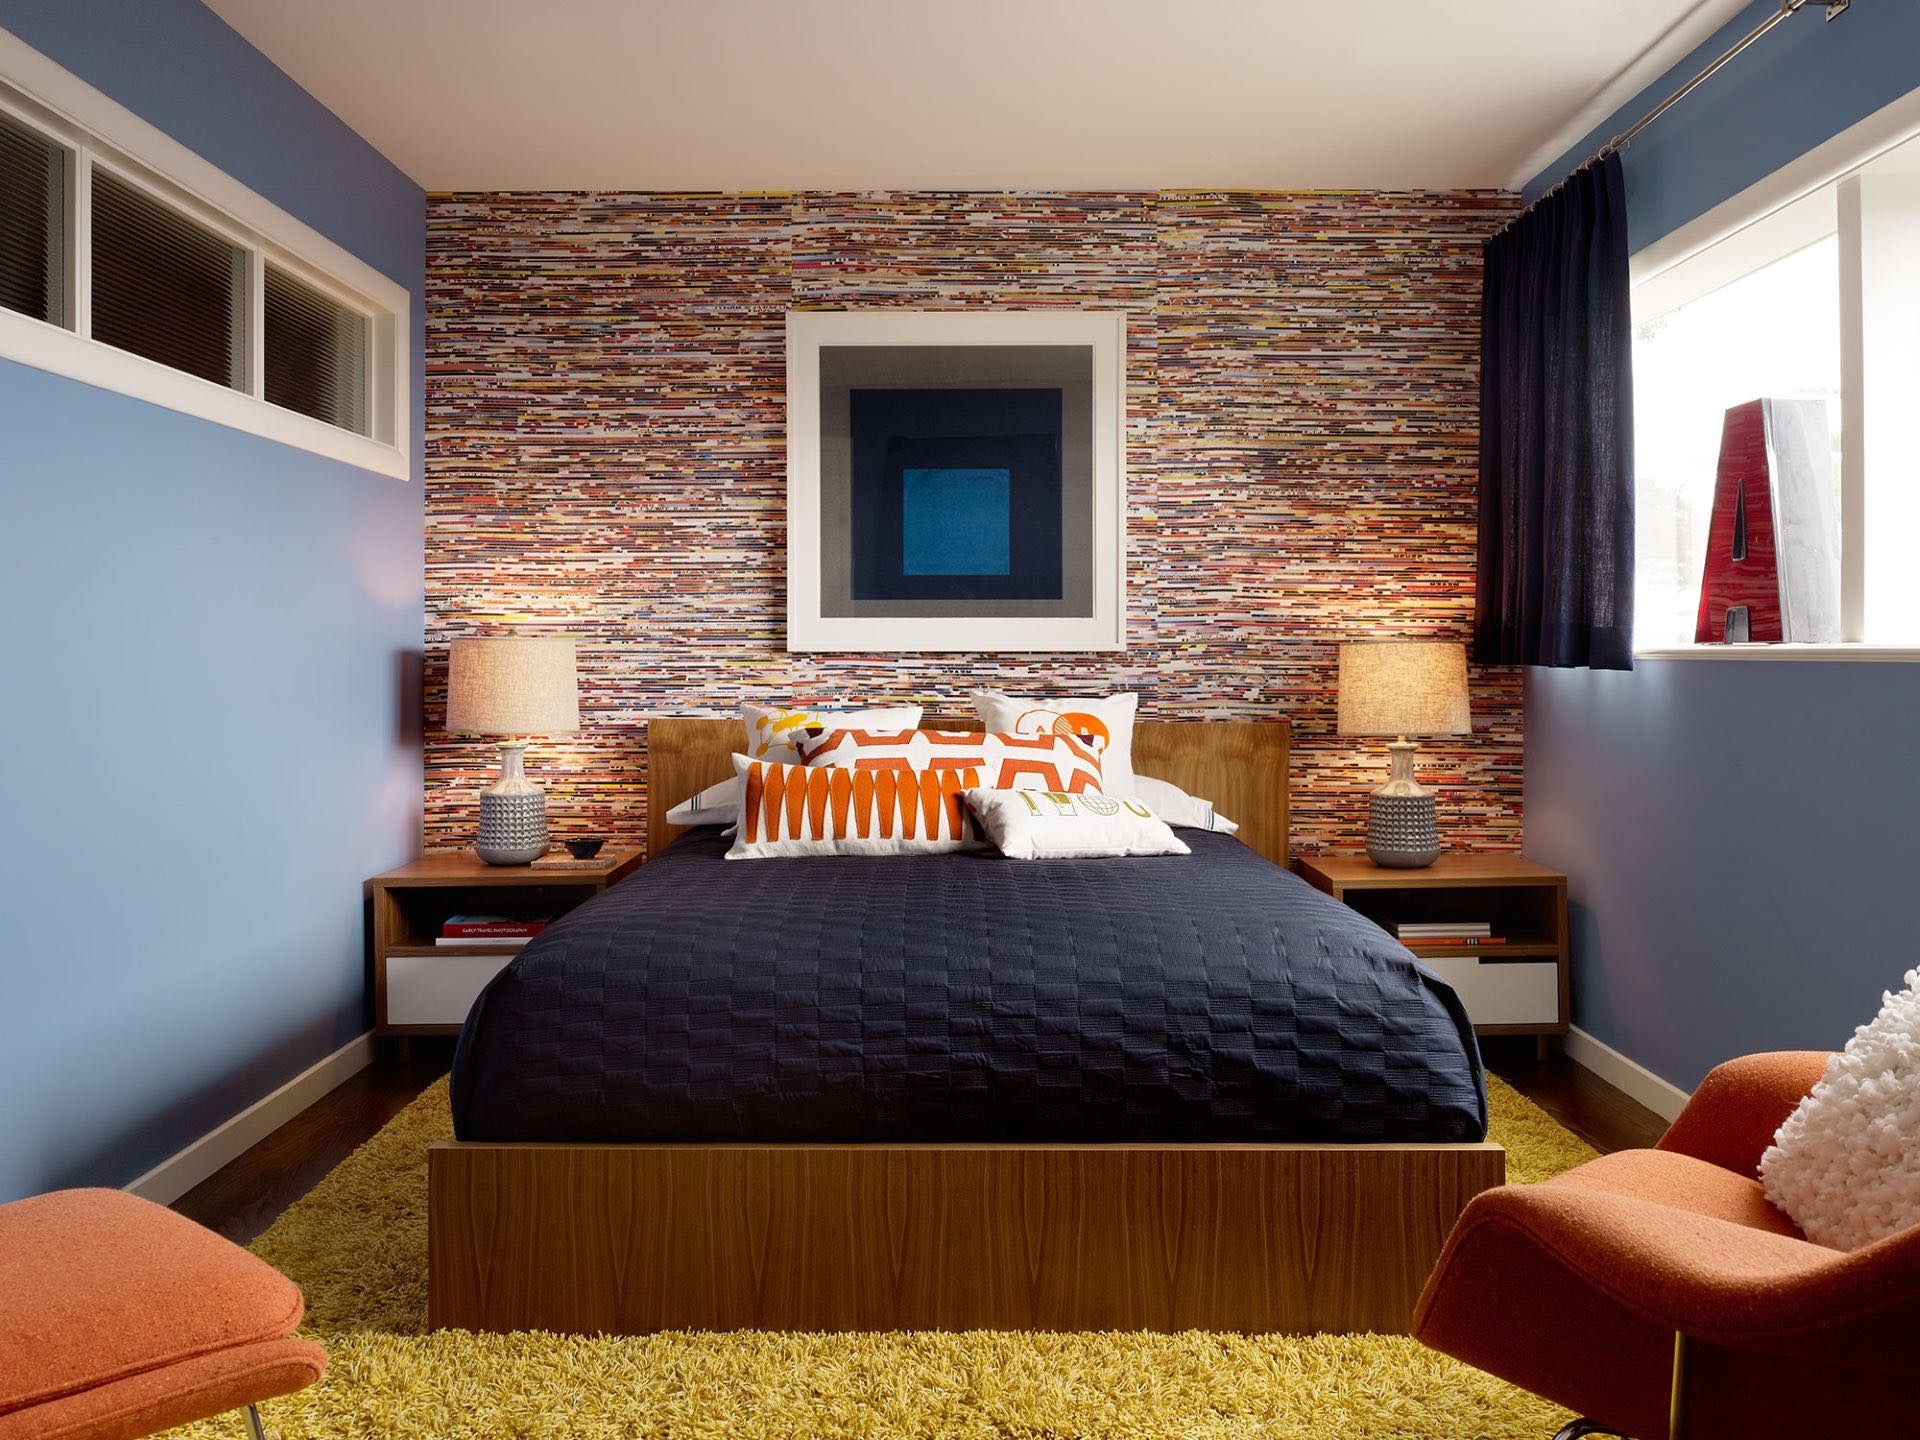 Feature wall in Retro bedroom is designed with vinyl records album to give off the vintage-inspired feel